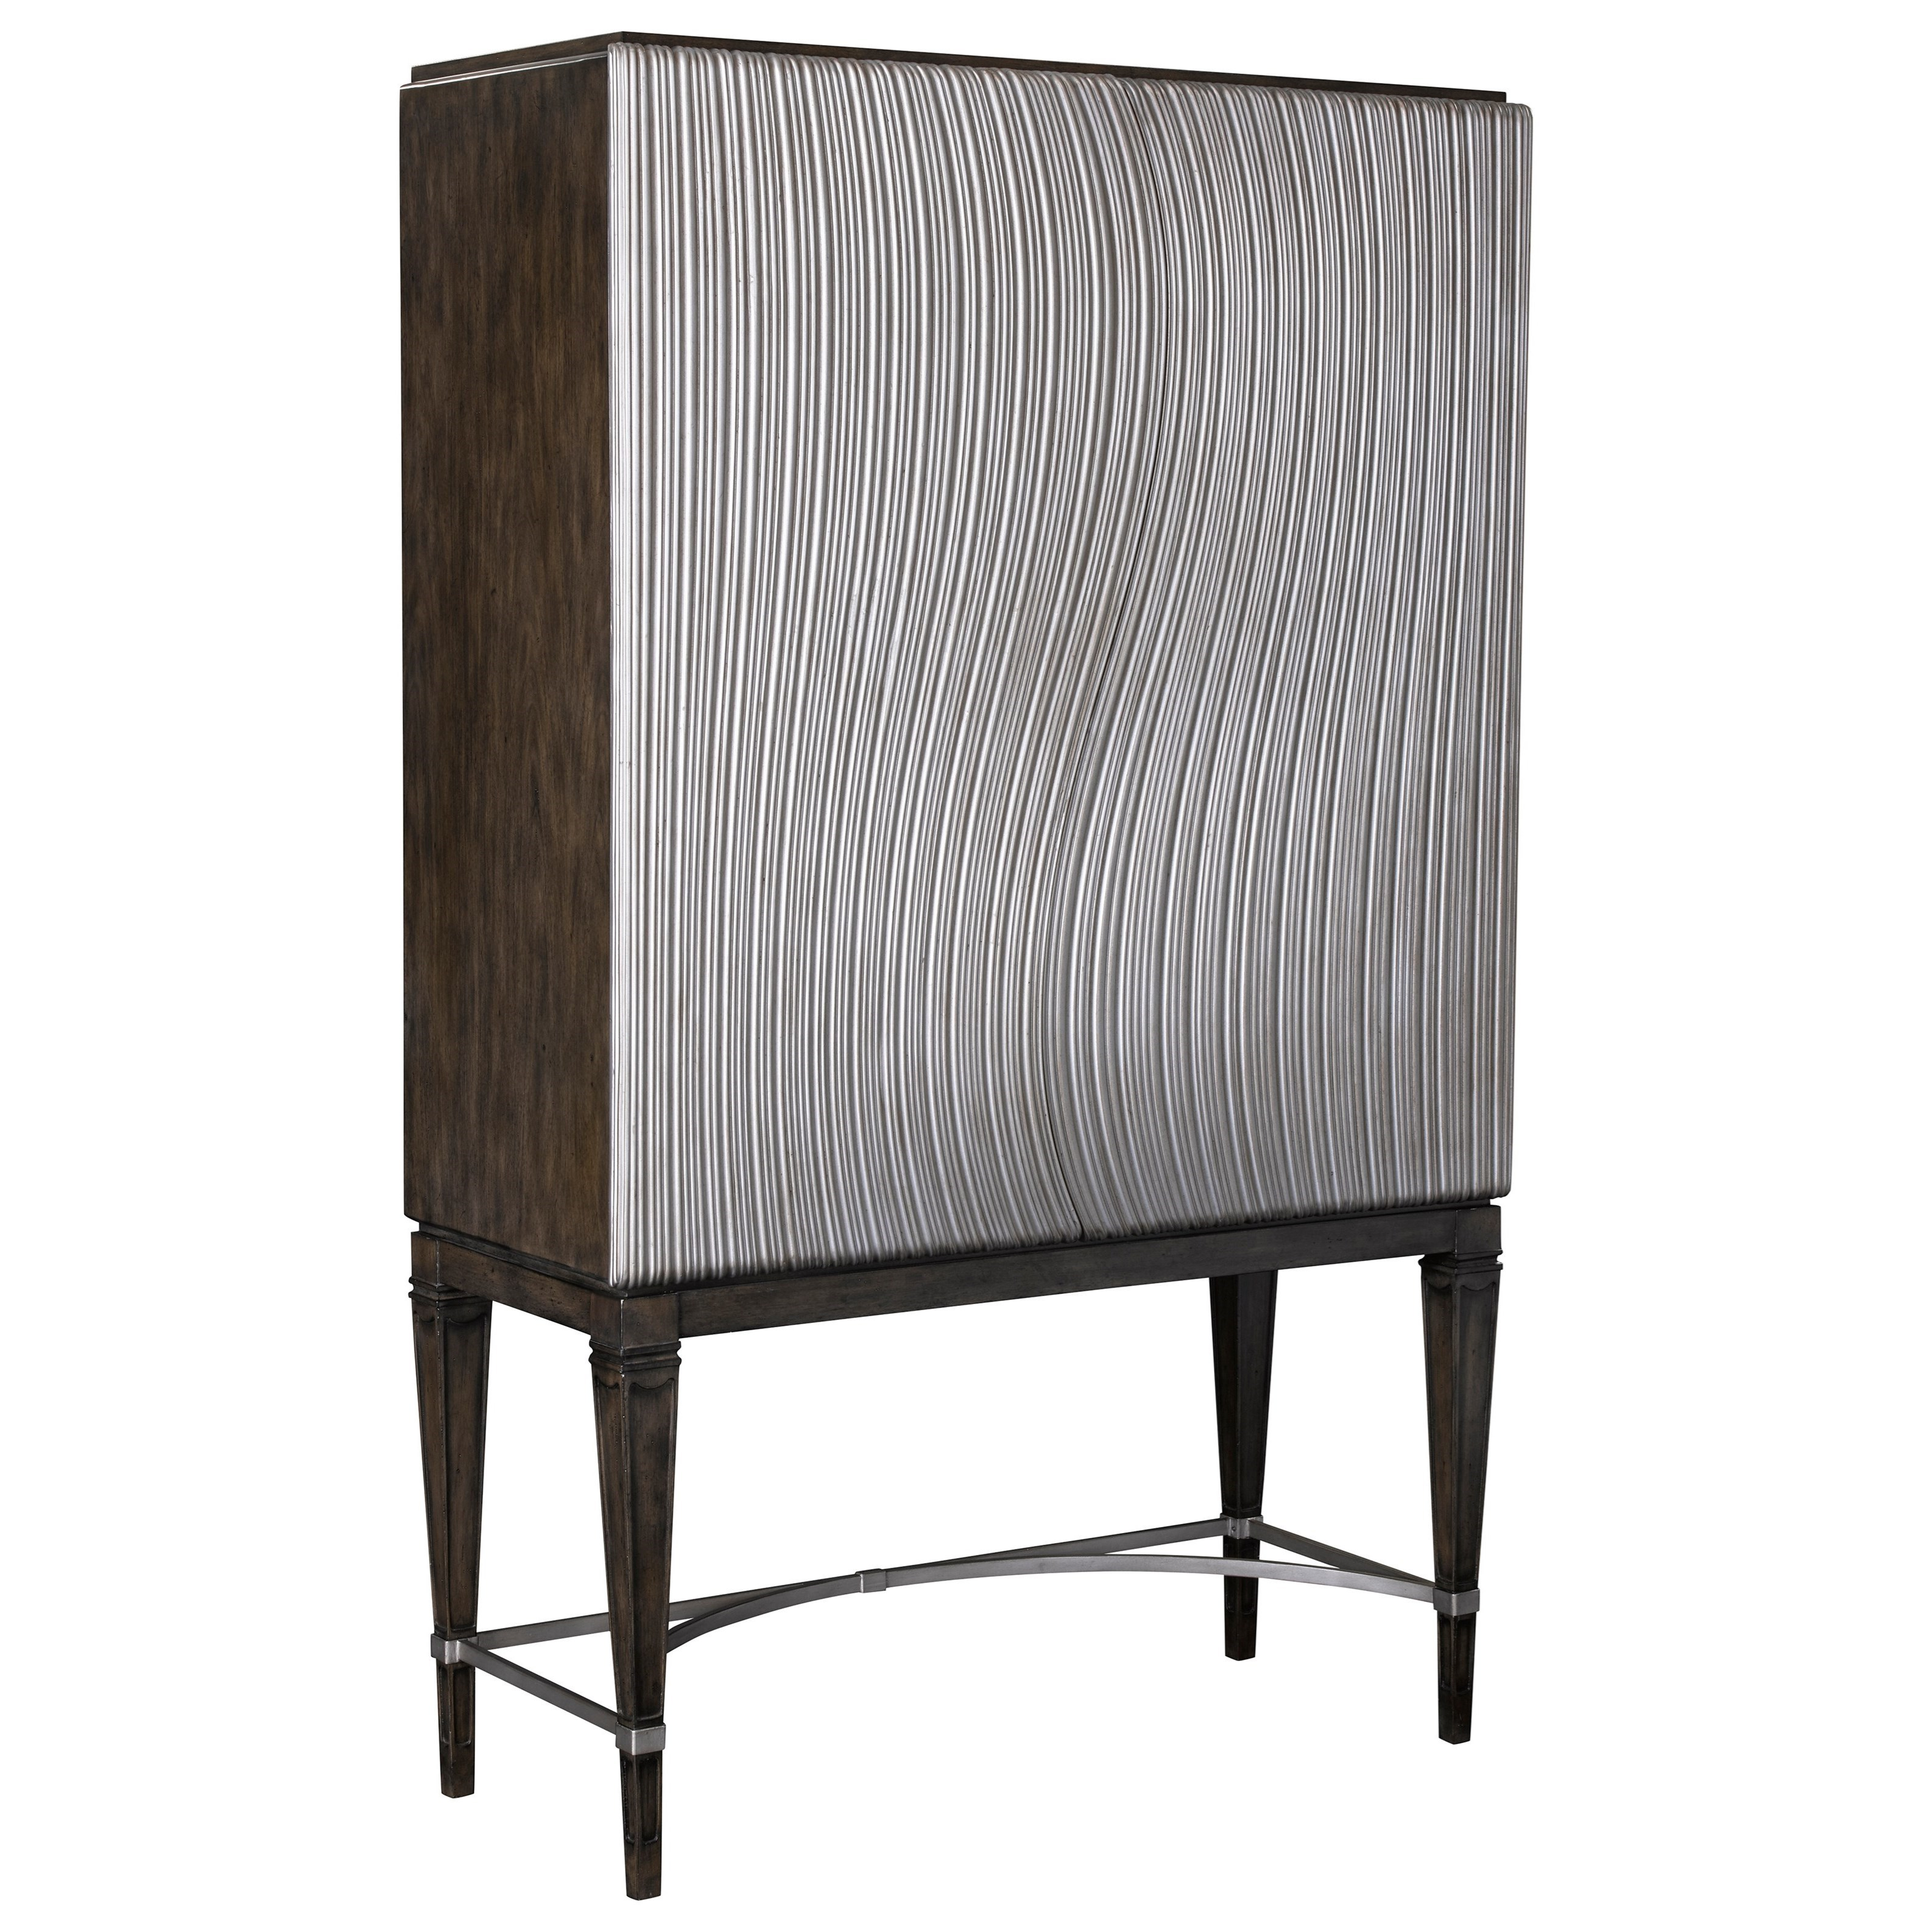 Broyhill Furniture Cashmera Armoire - Item Number: 4860-242